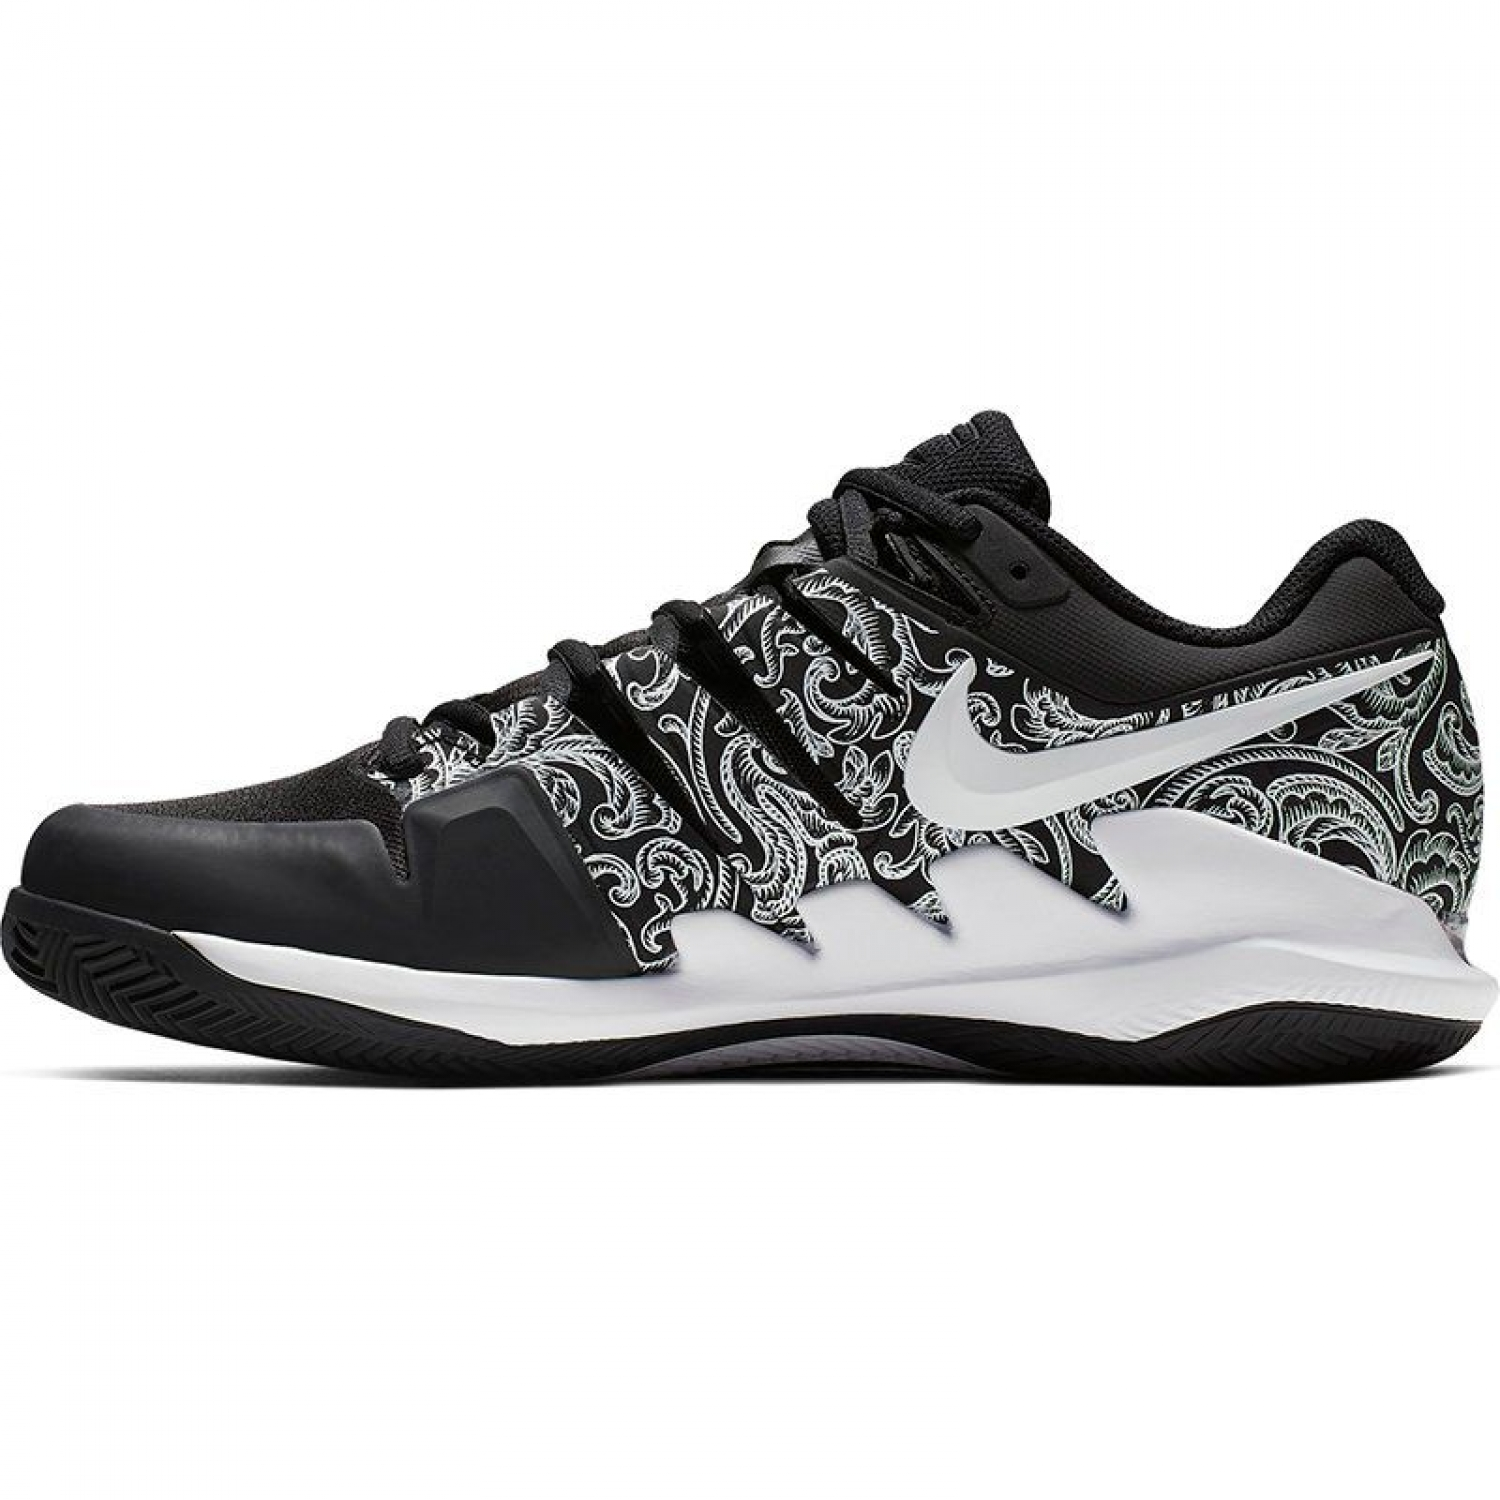 Кроссовки мужские Nike Air Zoom Vapor X clay white/print